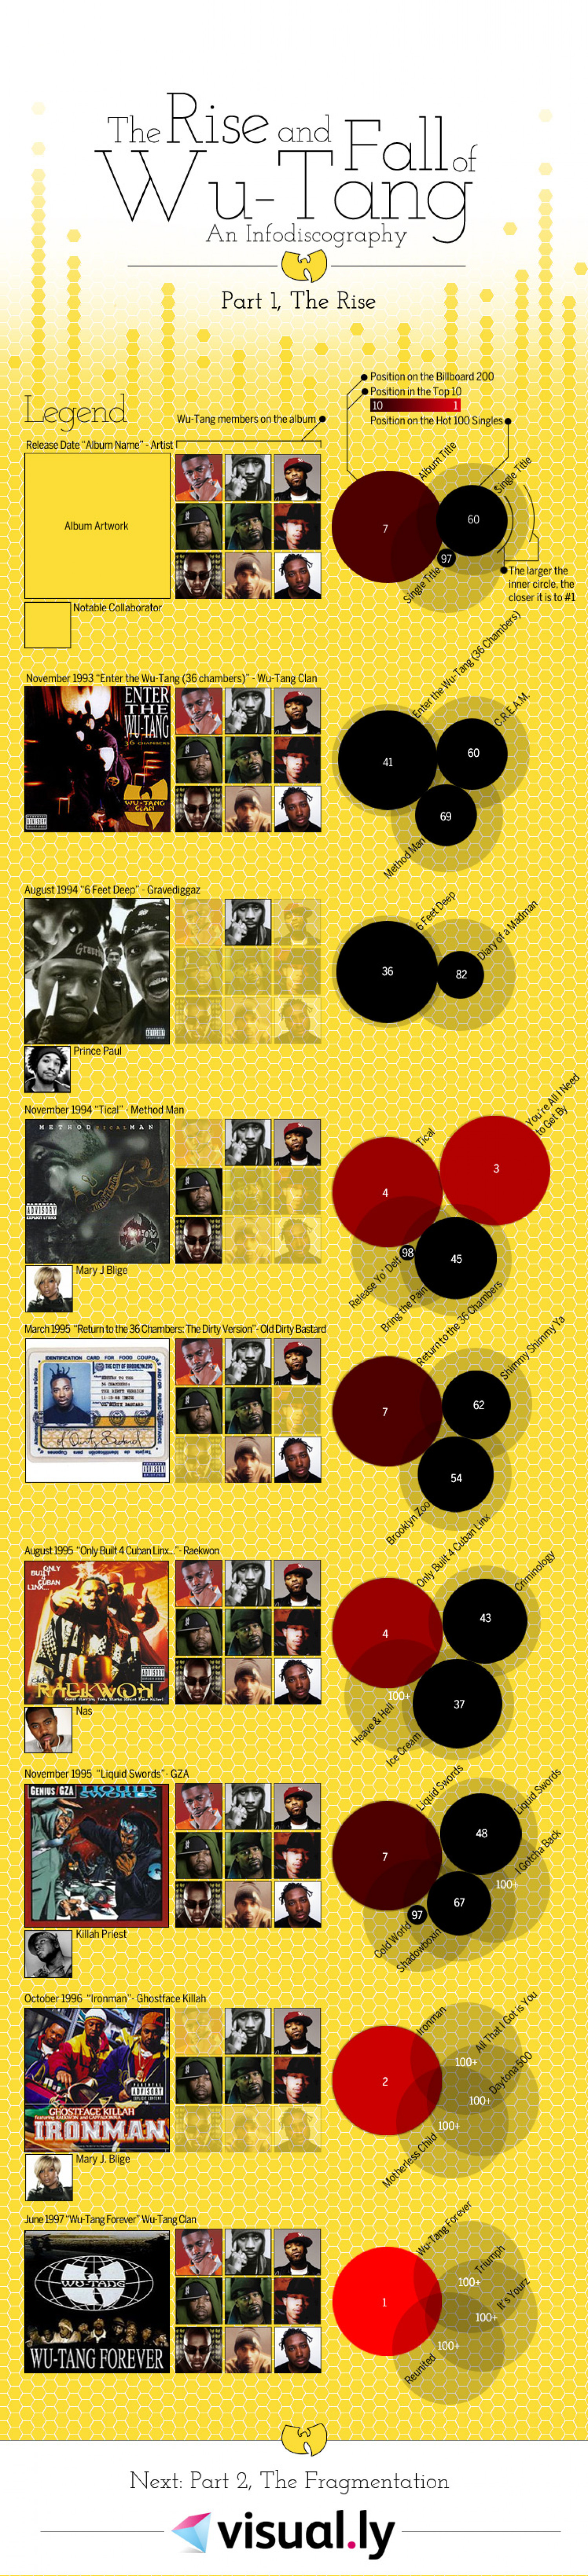 The Rise and Fall of Wu-Tang Infographic